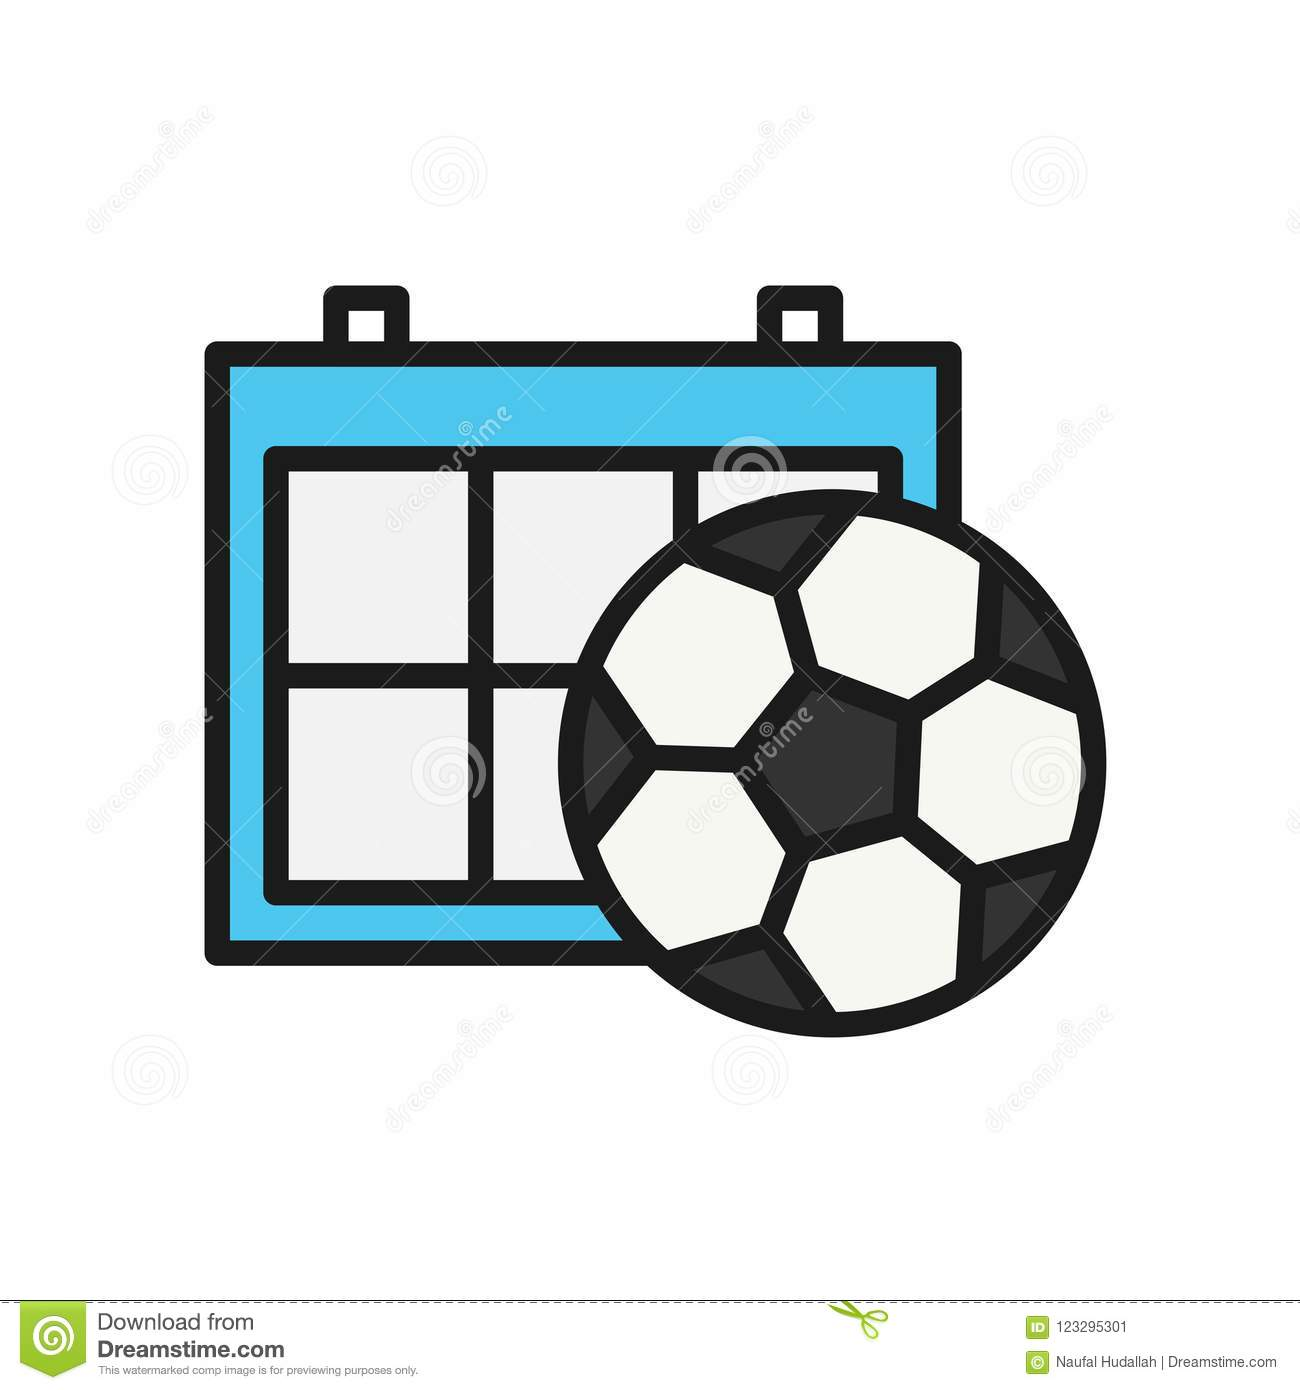 Calendario Sport.Football Schedule Calendar Icon Simple Illustration Outline